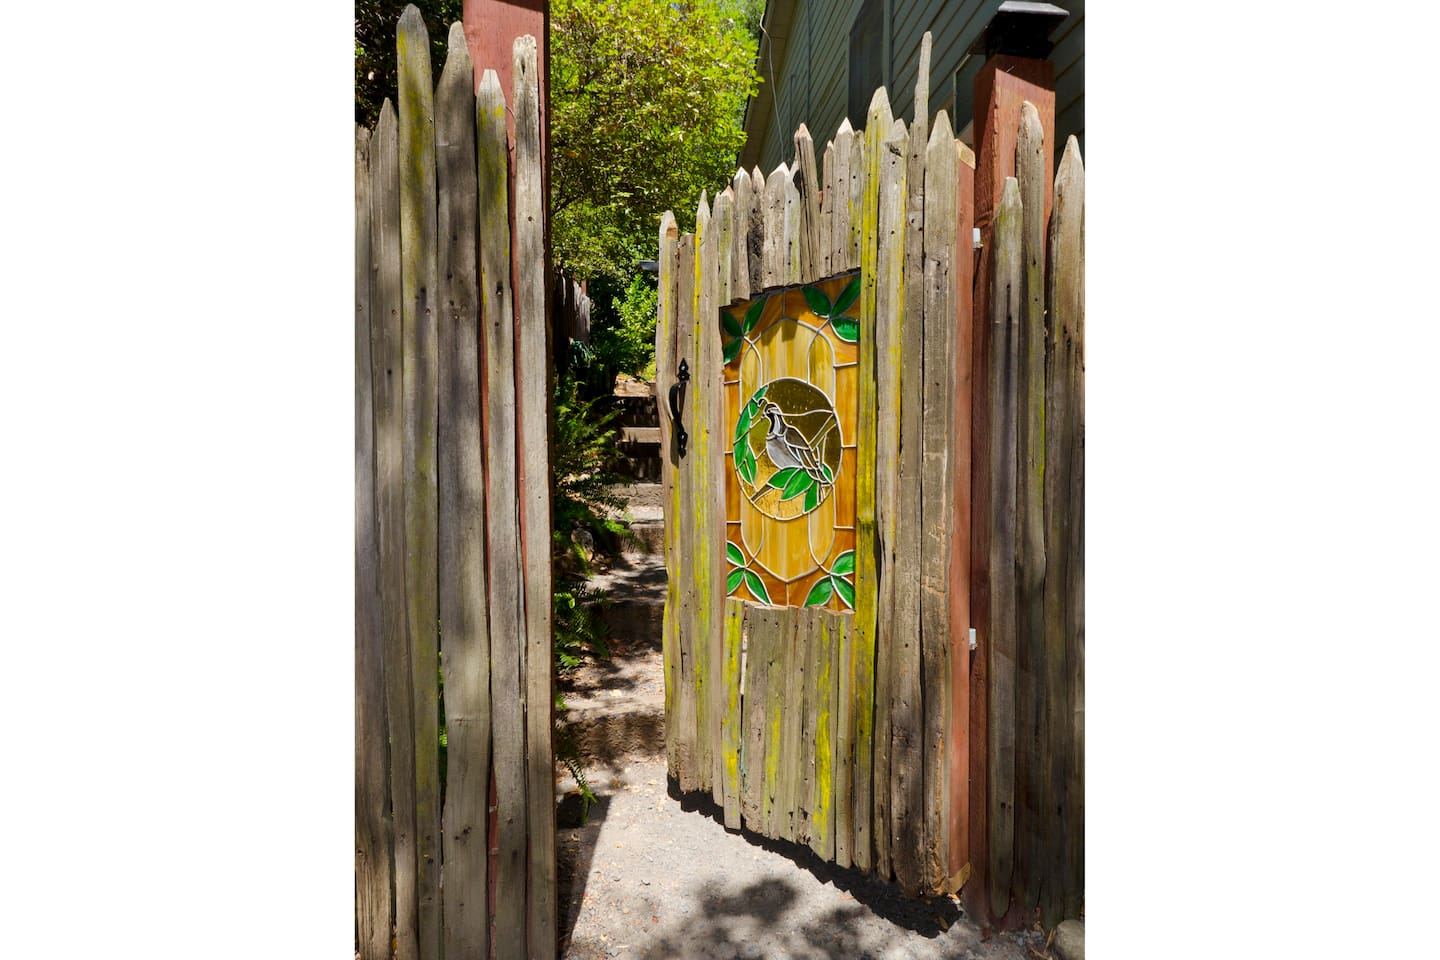 Walk up the stairs and through the gate. Welcome to Quail's Roost.